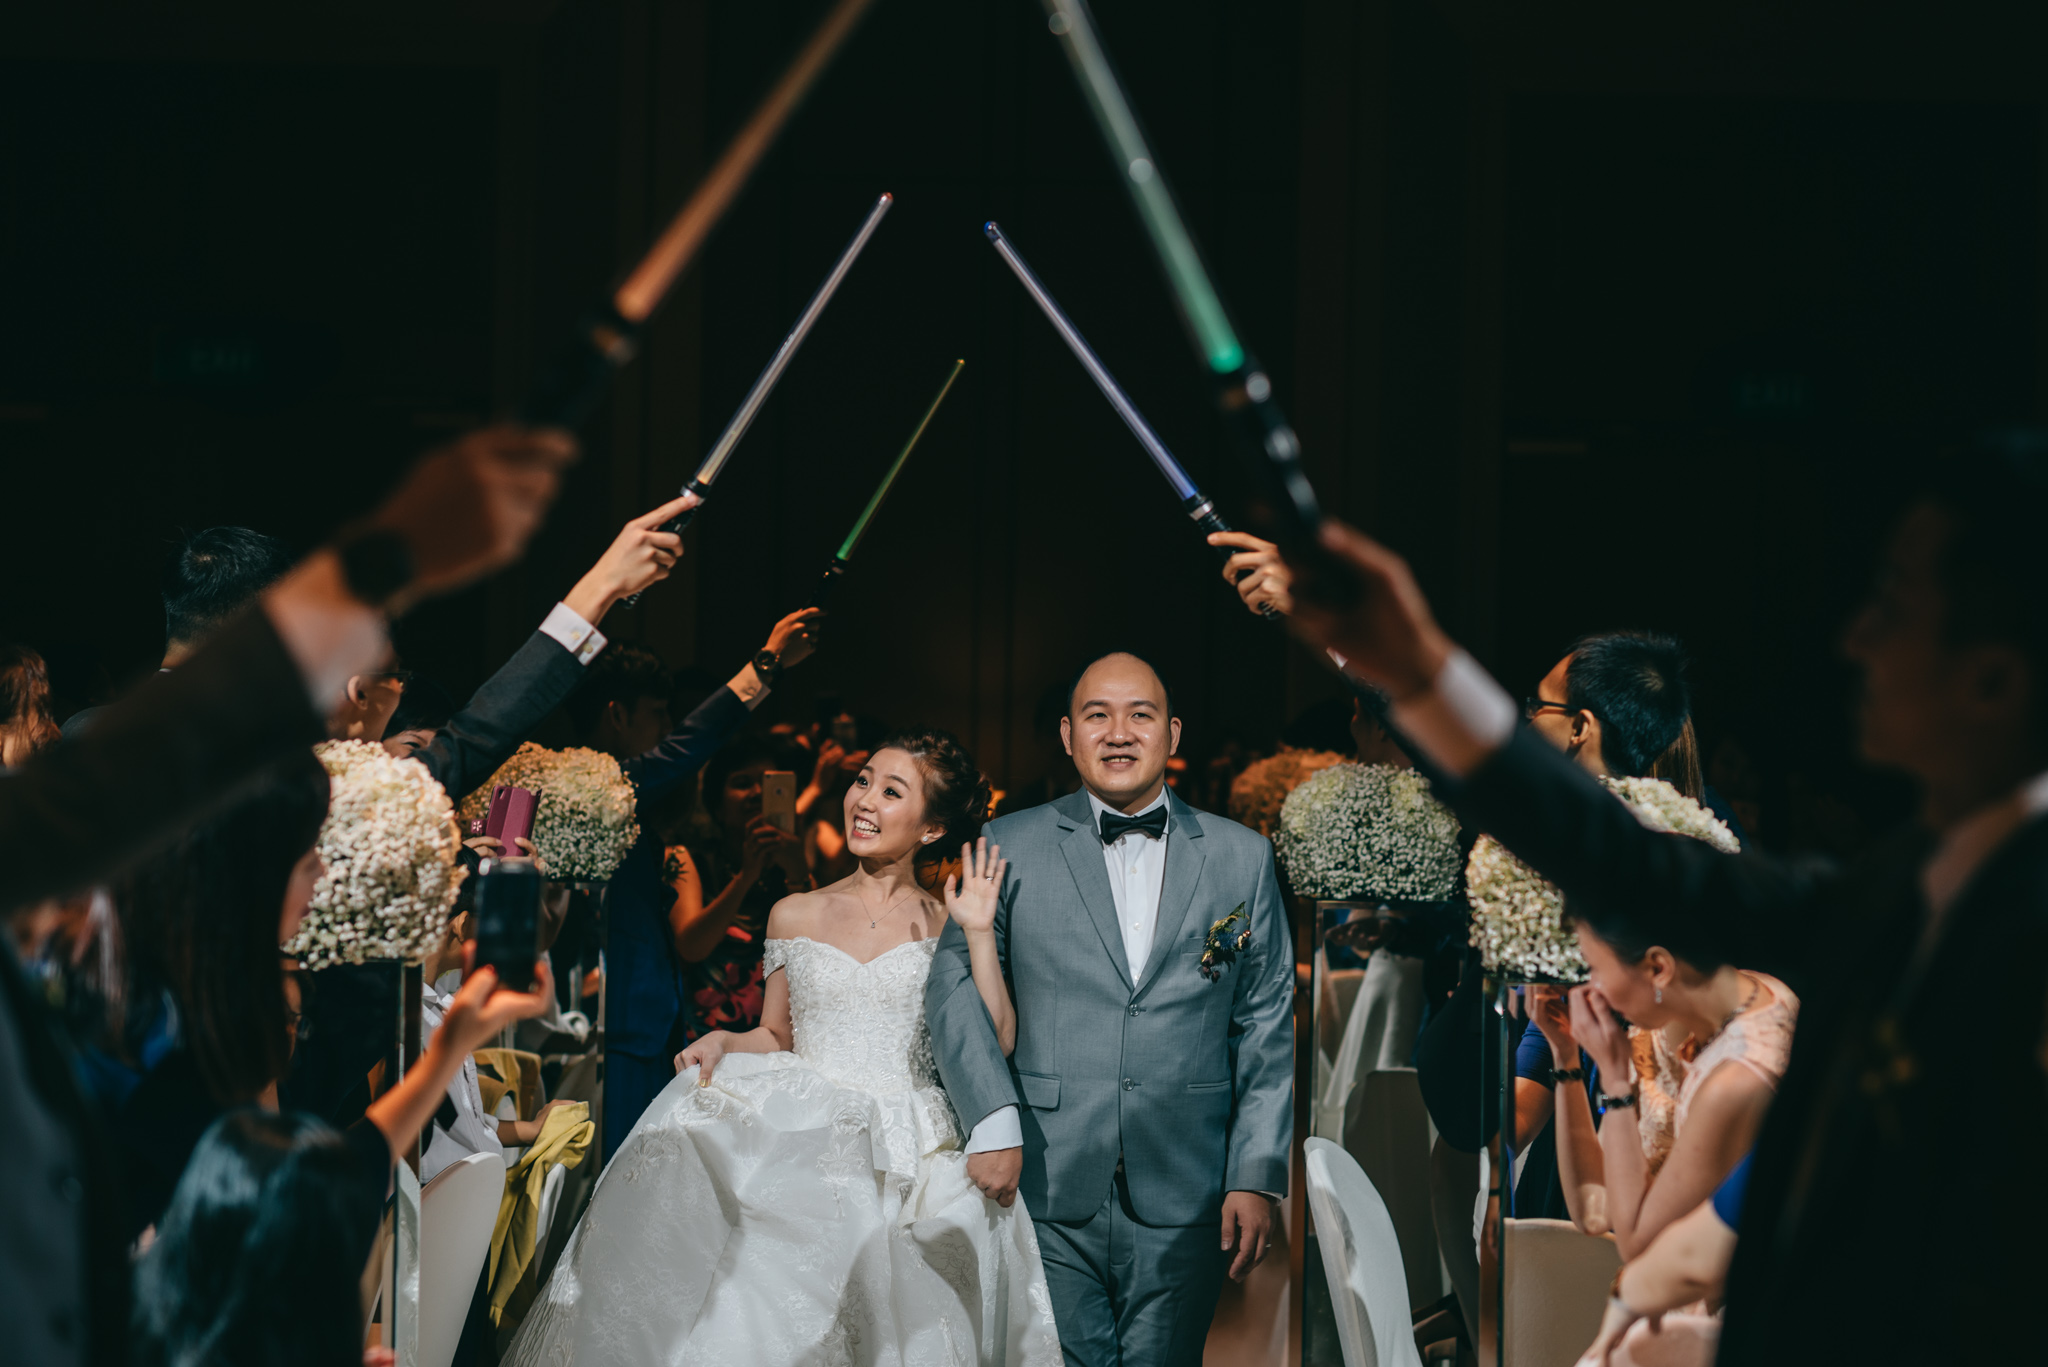 Eunice & Winshire Wedding Day Highlights (resized for sharing) - 184.jpg